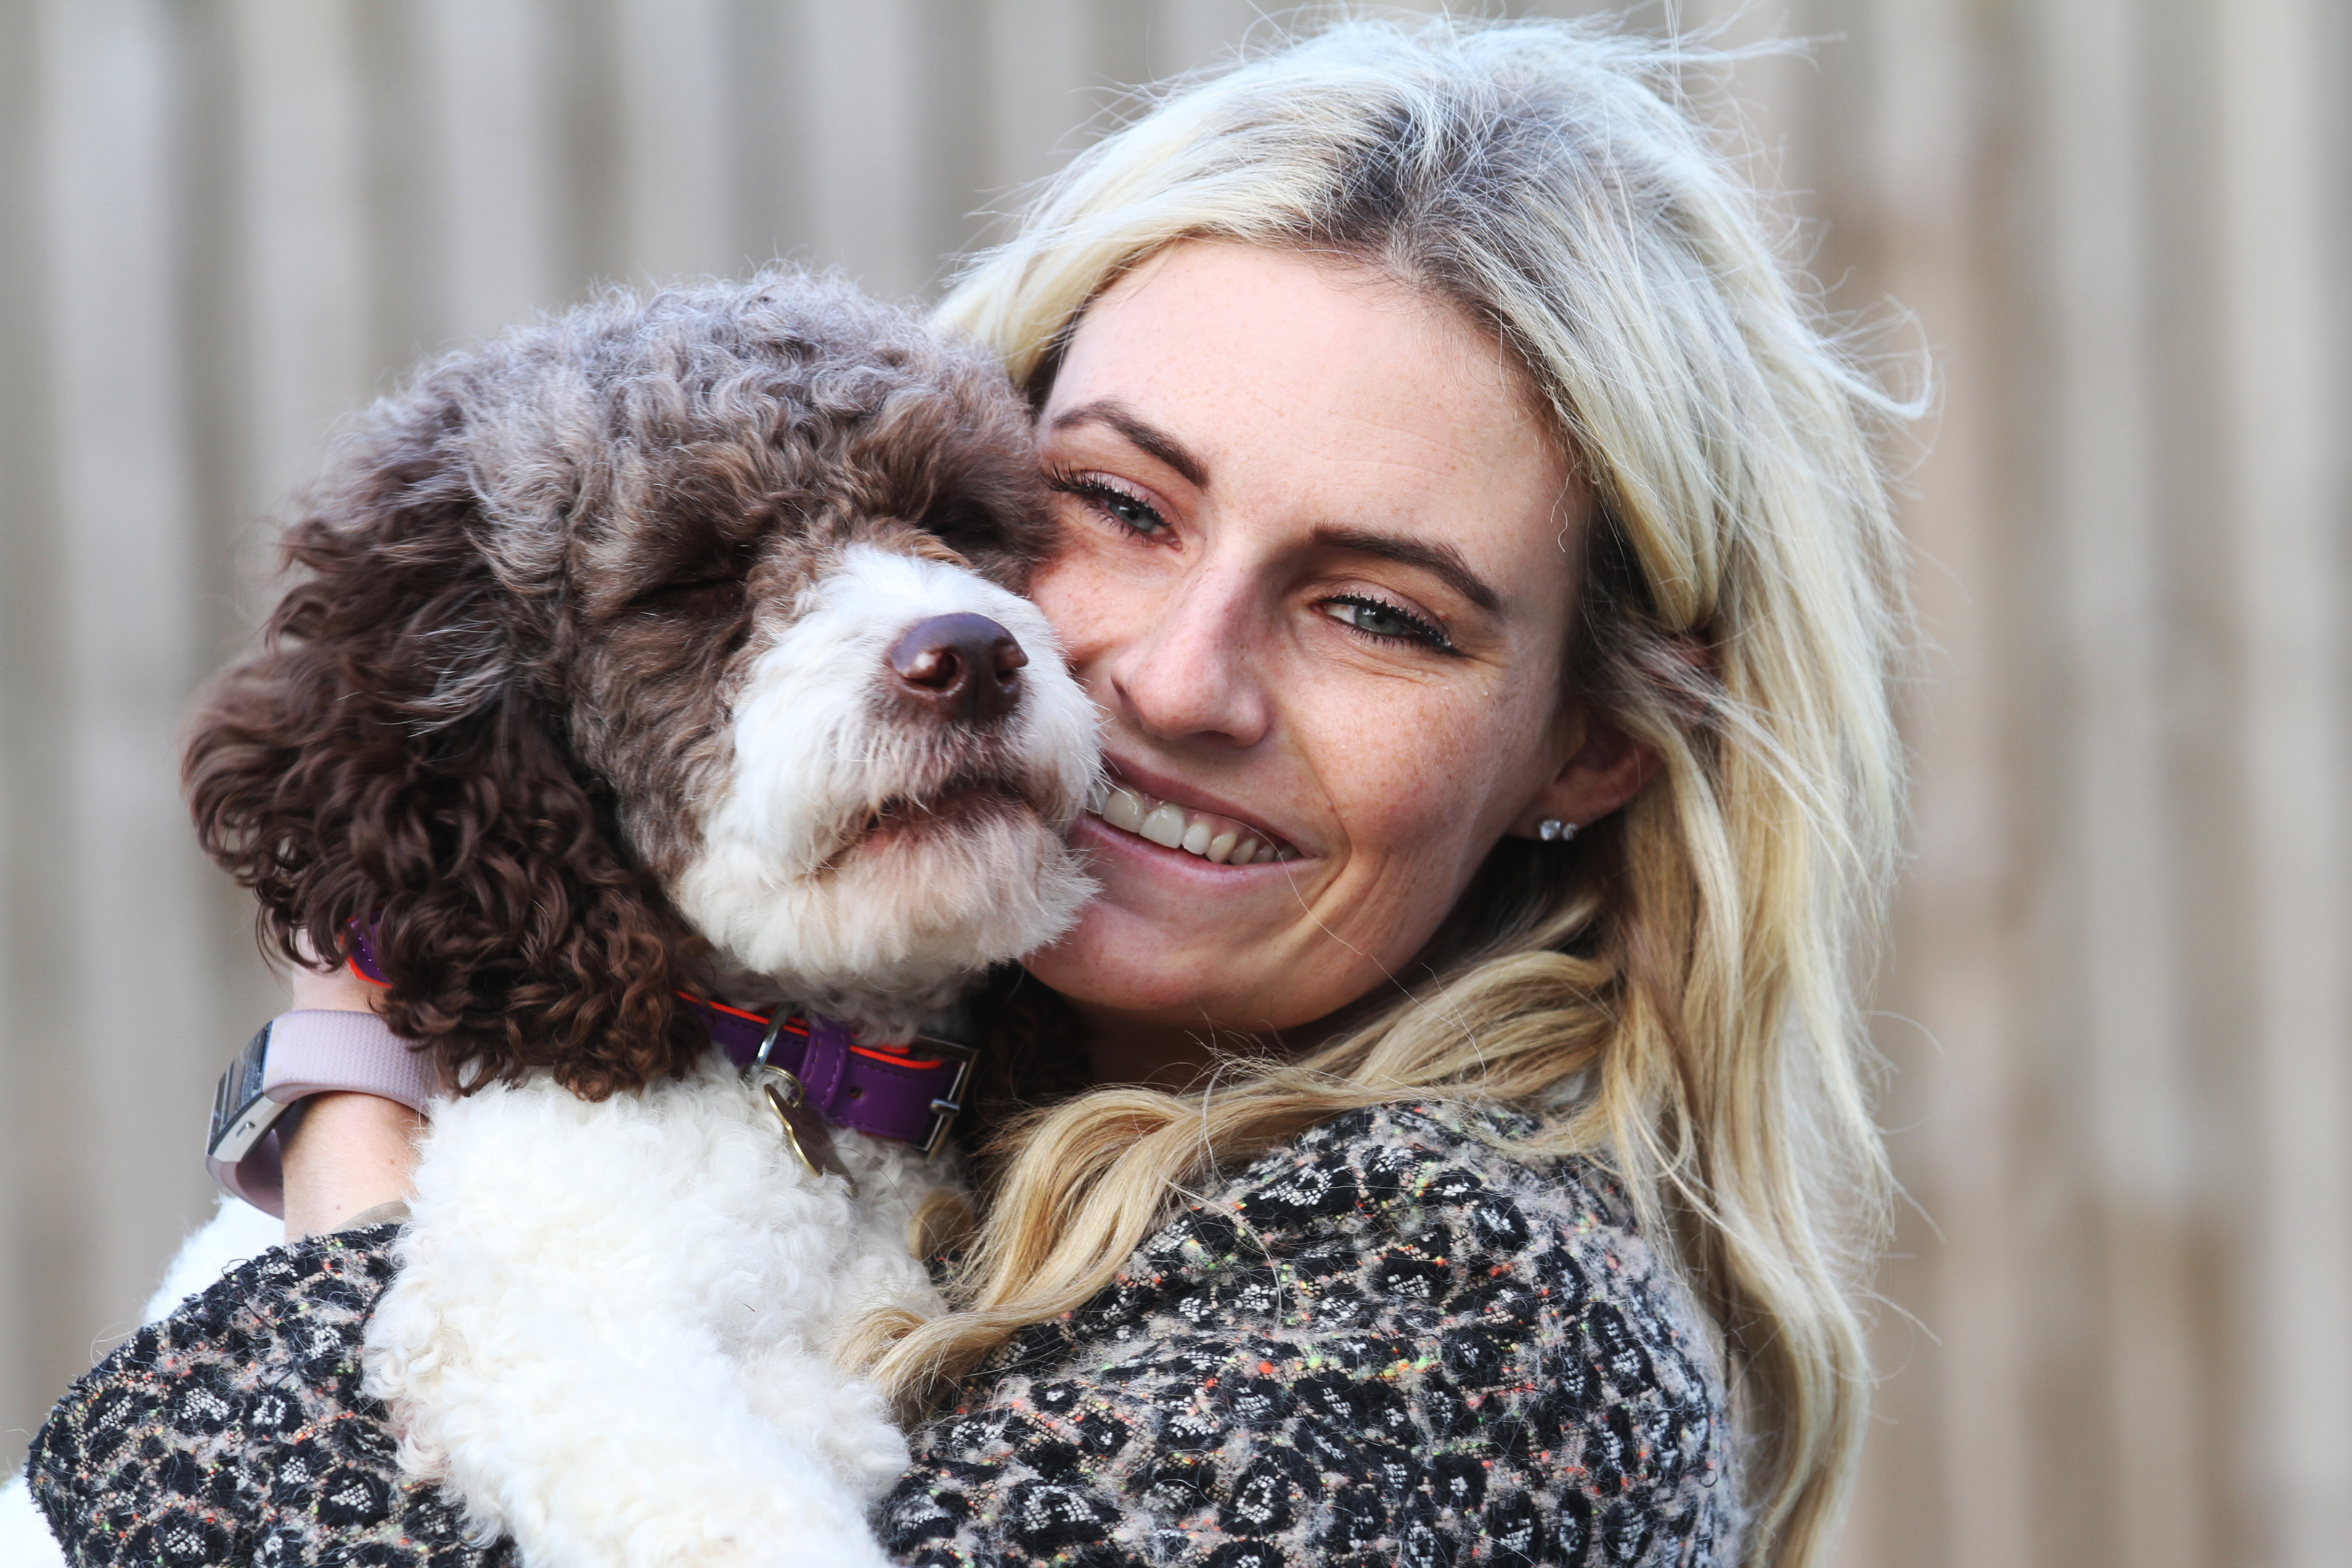 Rachael Nixon was happily reunited with Ester on Tuesday.